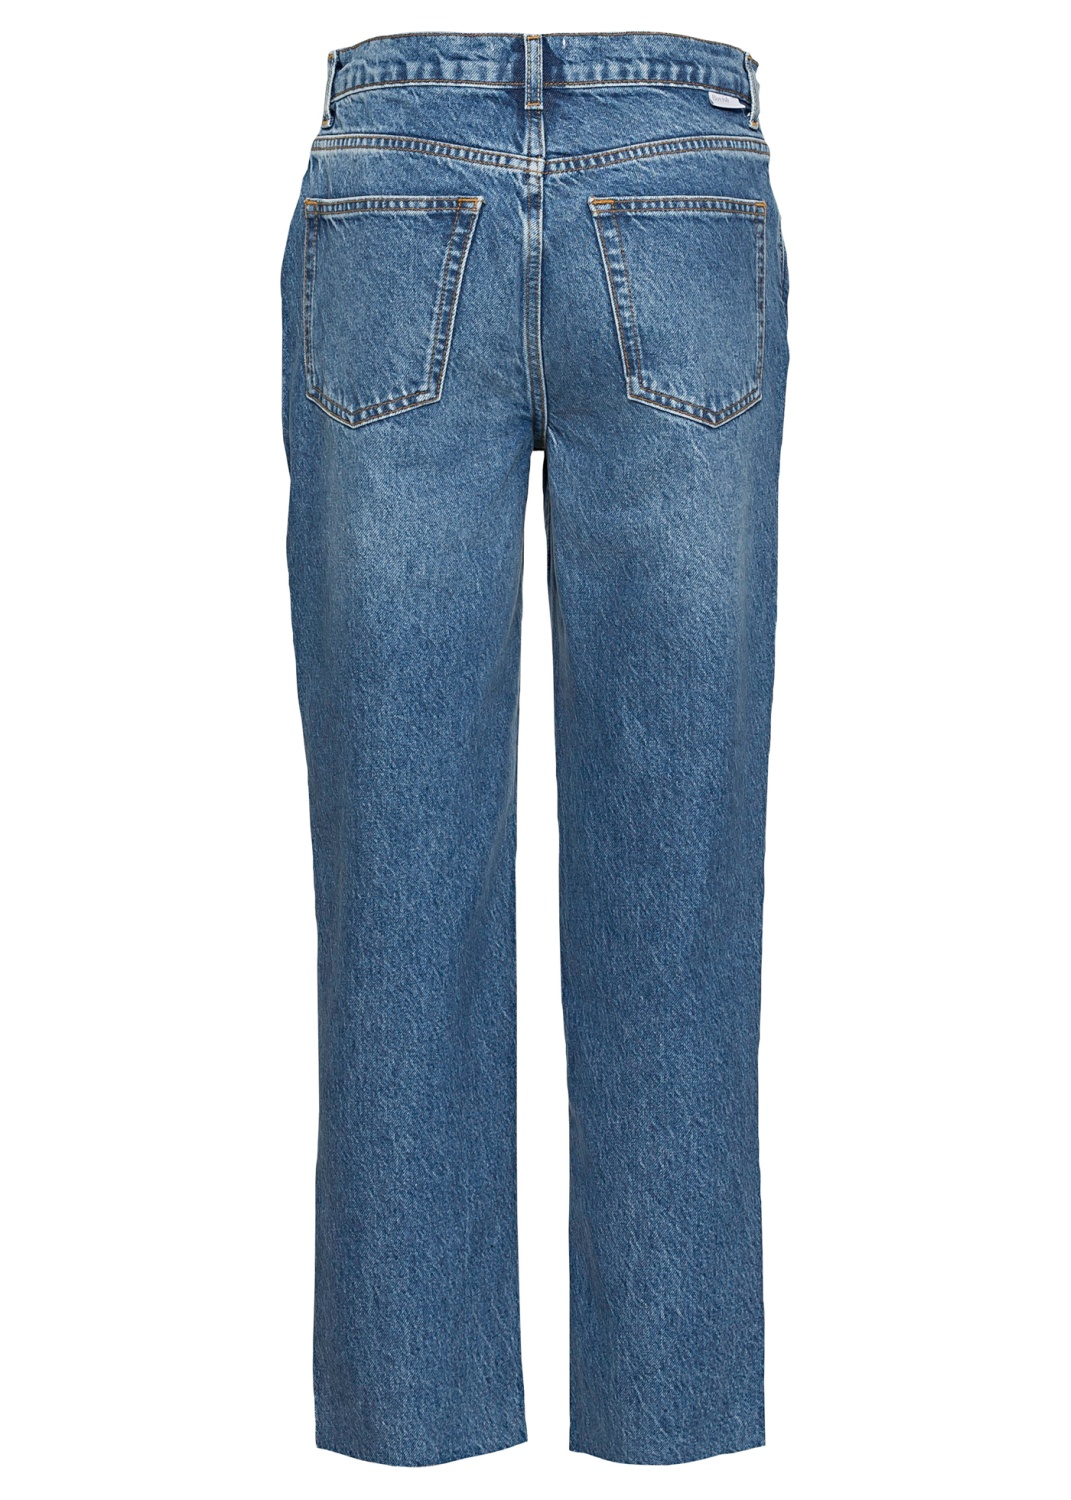 -TOMMY HIGH RISE STRAIGHT JEAN image number 1